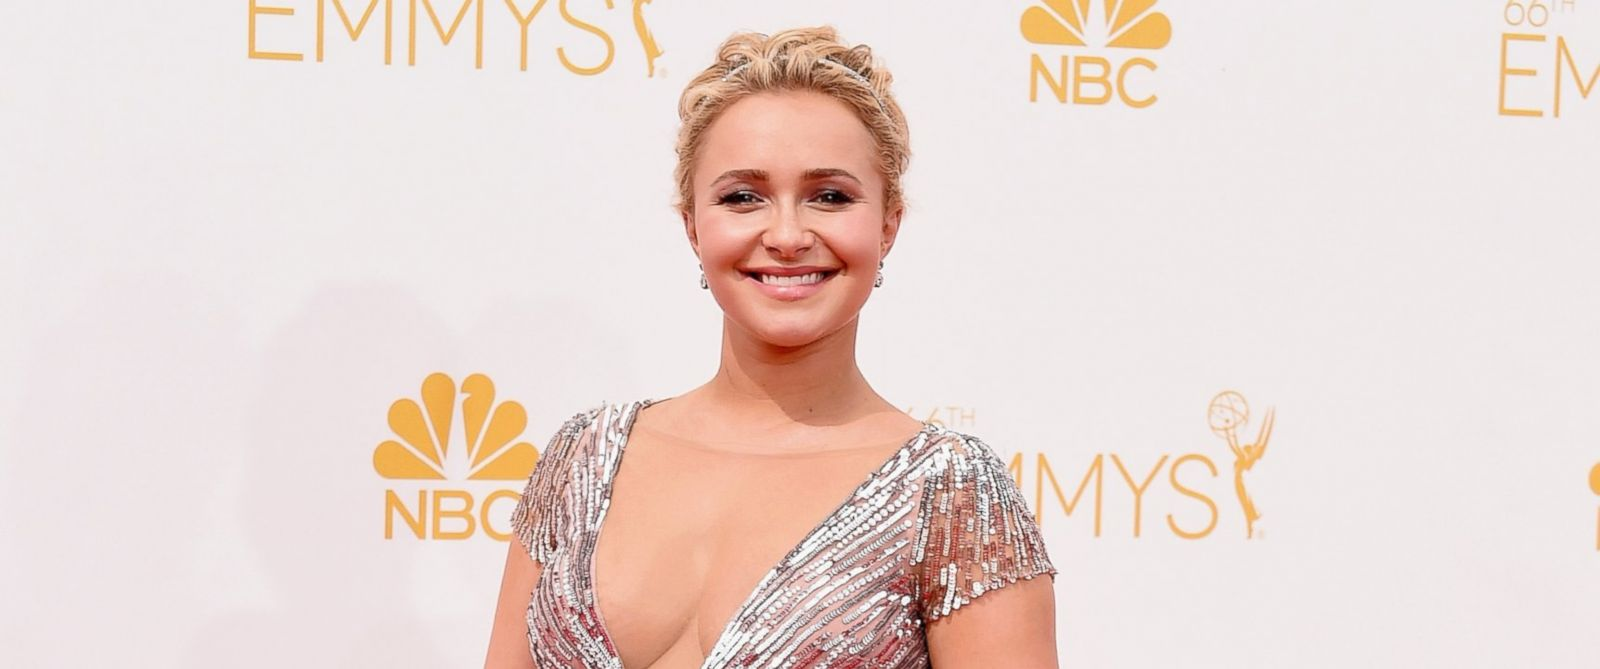 PHOTO: Actress Hayden Panettiere attends the 66th Annual Primetime Emmy Awards held at Nokia Theatre L.A. Live on Aug. 25, 2014 in Los Angeles, Calif.